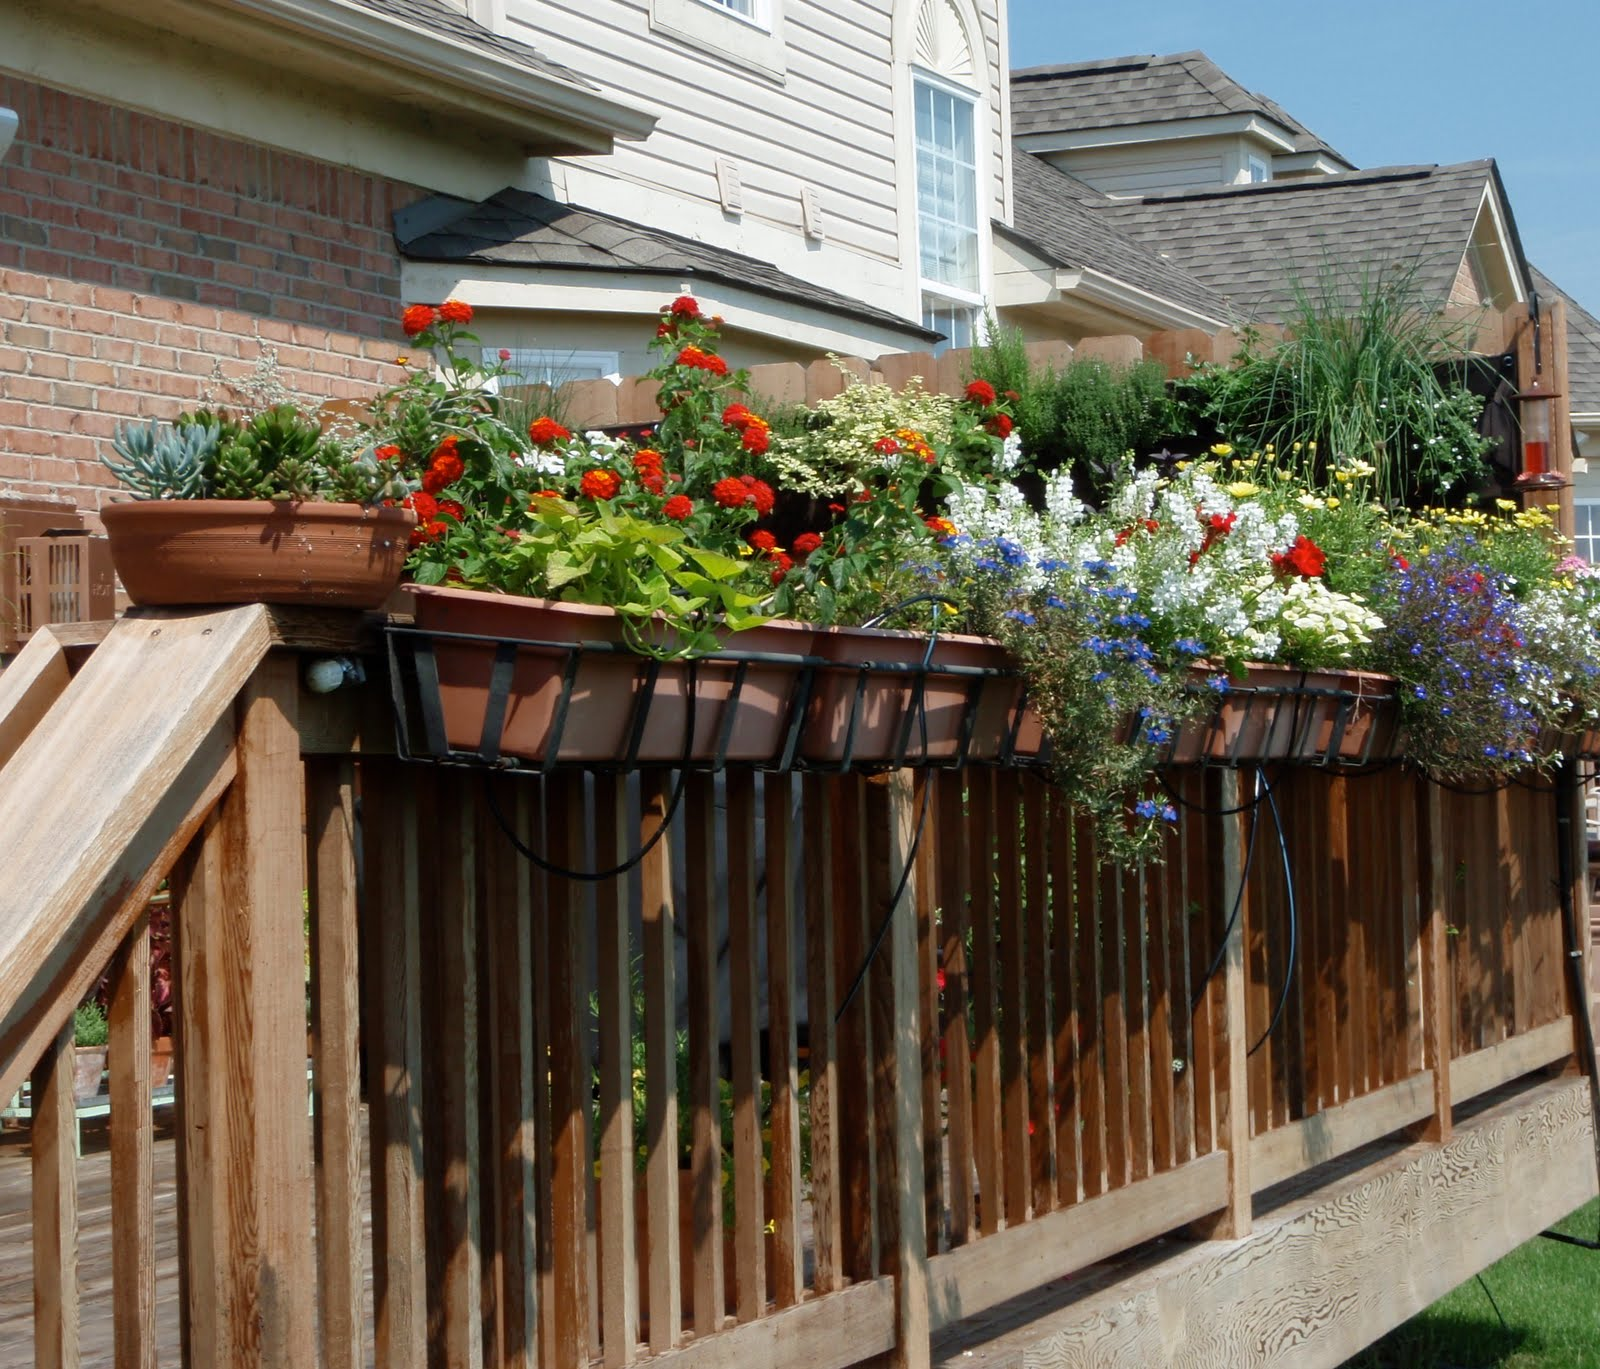 Banister Planters | Deck Rail Planters | Over The Rail Planters